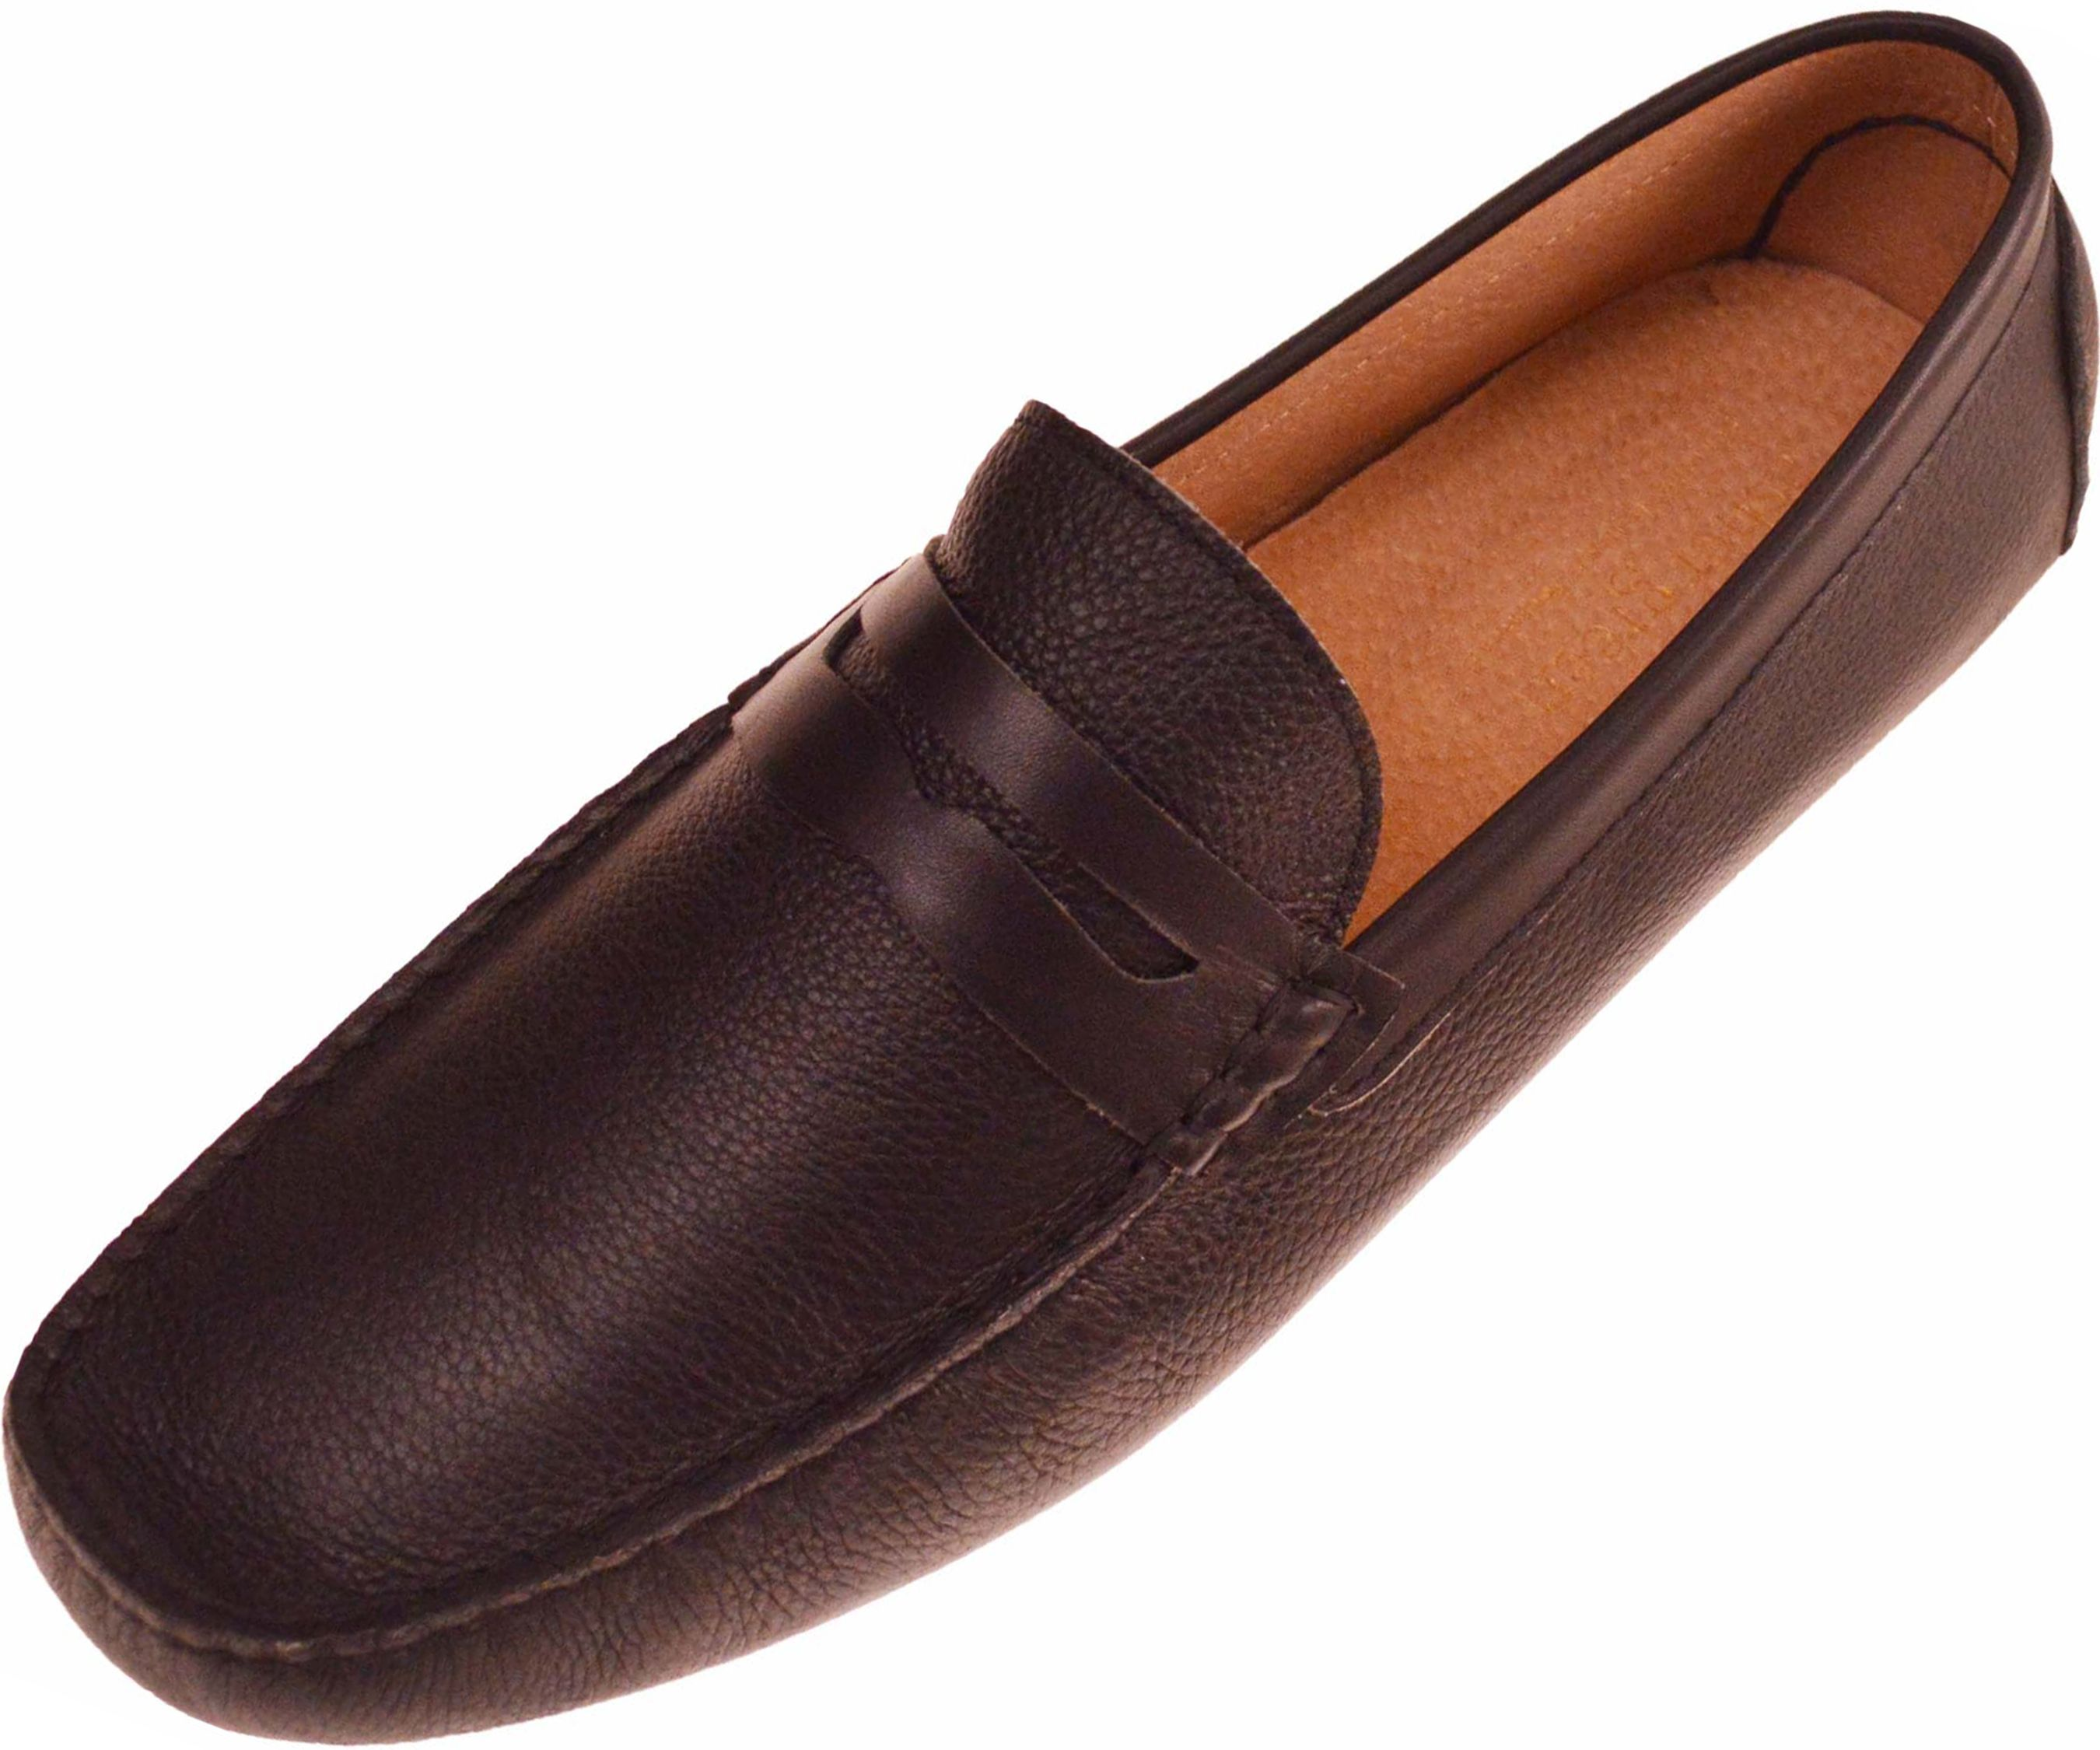 Asher Green Mens Slip On Penny Loafer Style Driving Moccasin Shoes In Black Pebble Grain Leather Style Flagler-000Asher Green Presents Style FlagerGenuine Pebble Grain Leather Penny Loafer Driving Shoe in Black!Slip your feet into a pair of Comfortable AND Stylish Penny Loafers!Click to Check Out this Style in Brown